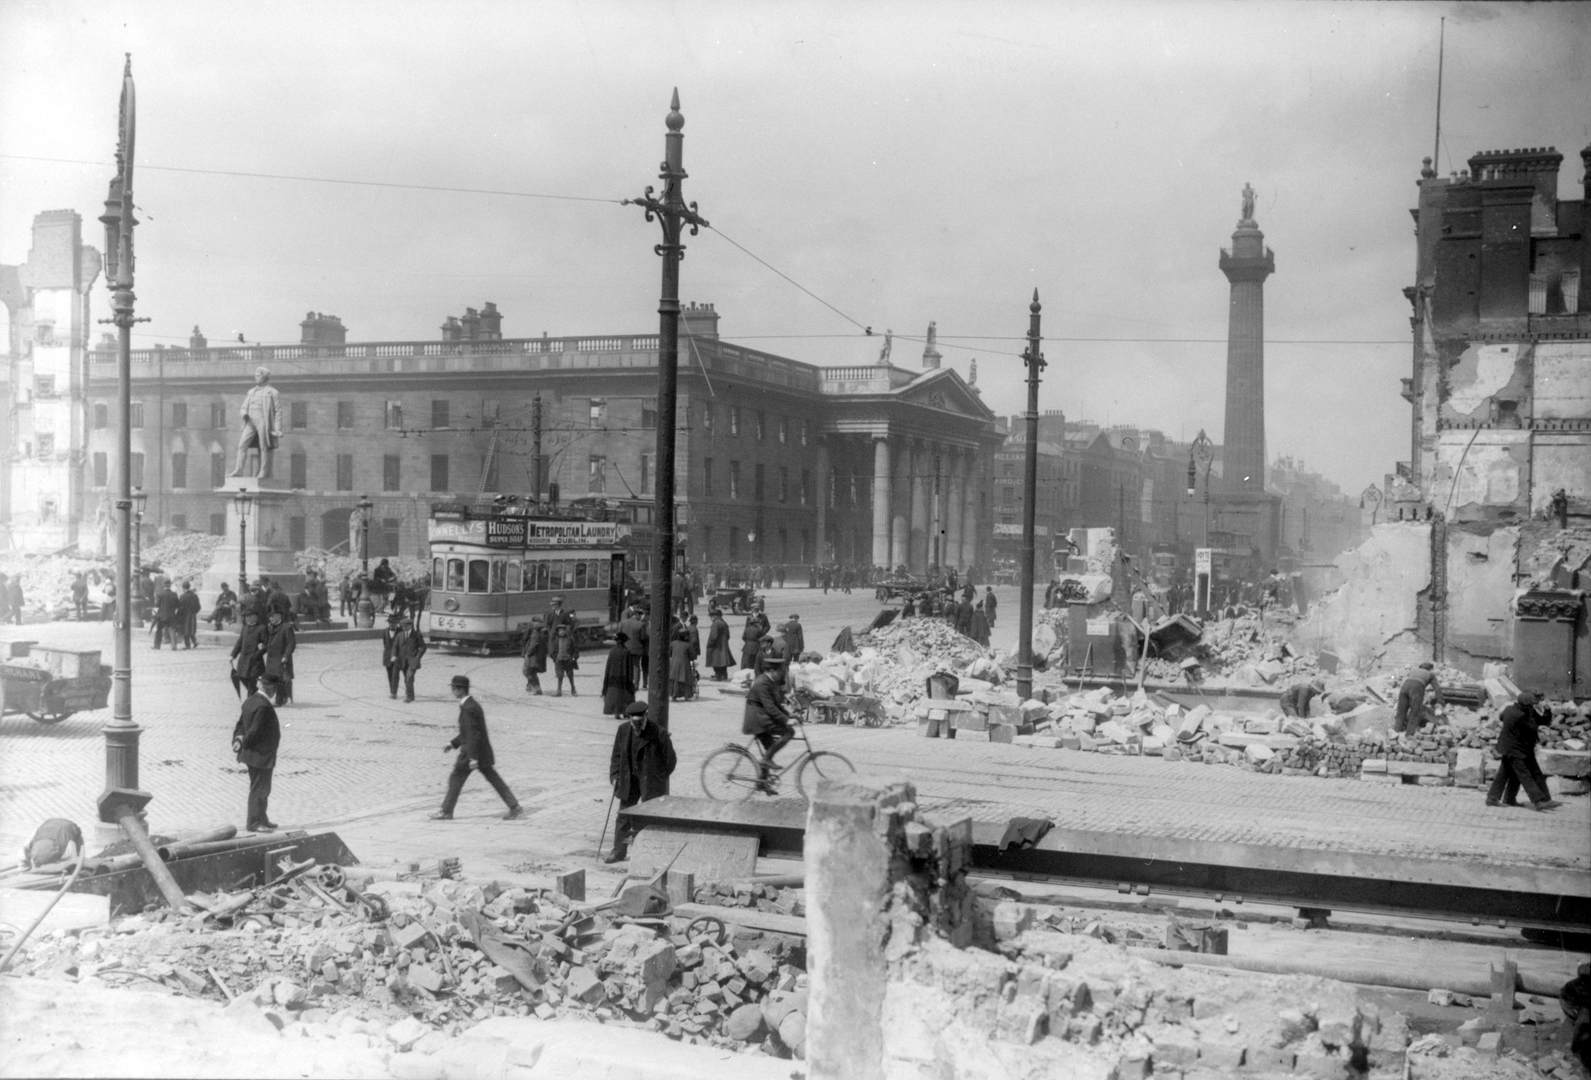 Dublin in ruins during the 1916 Rising